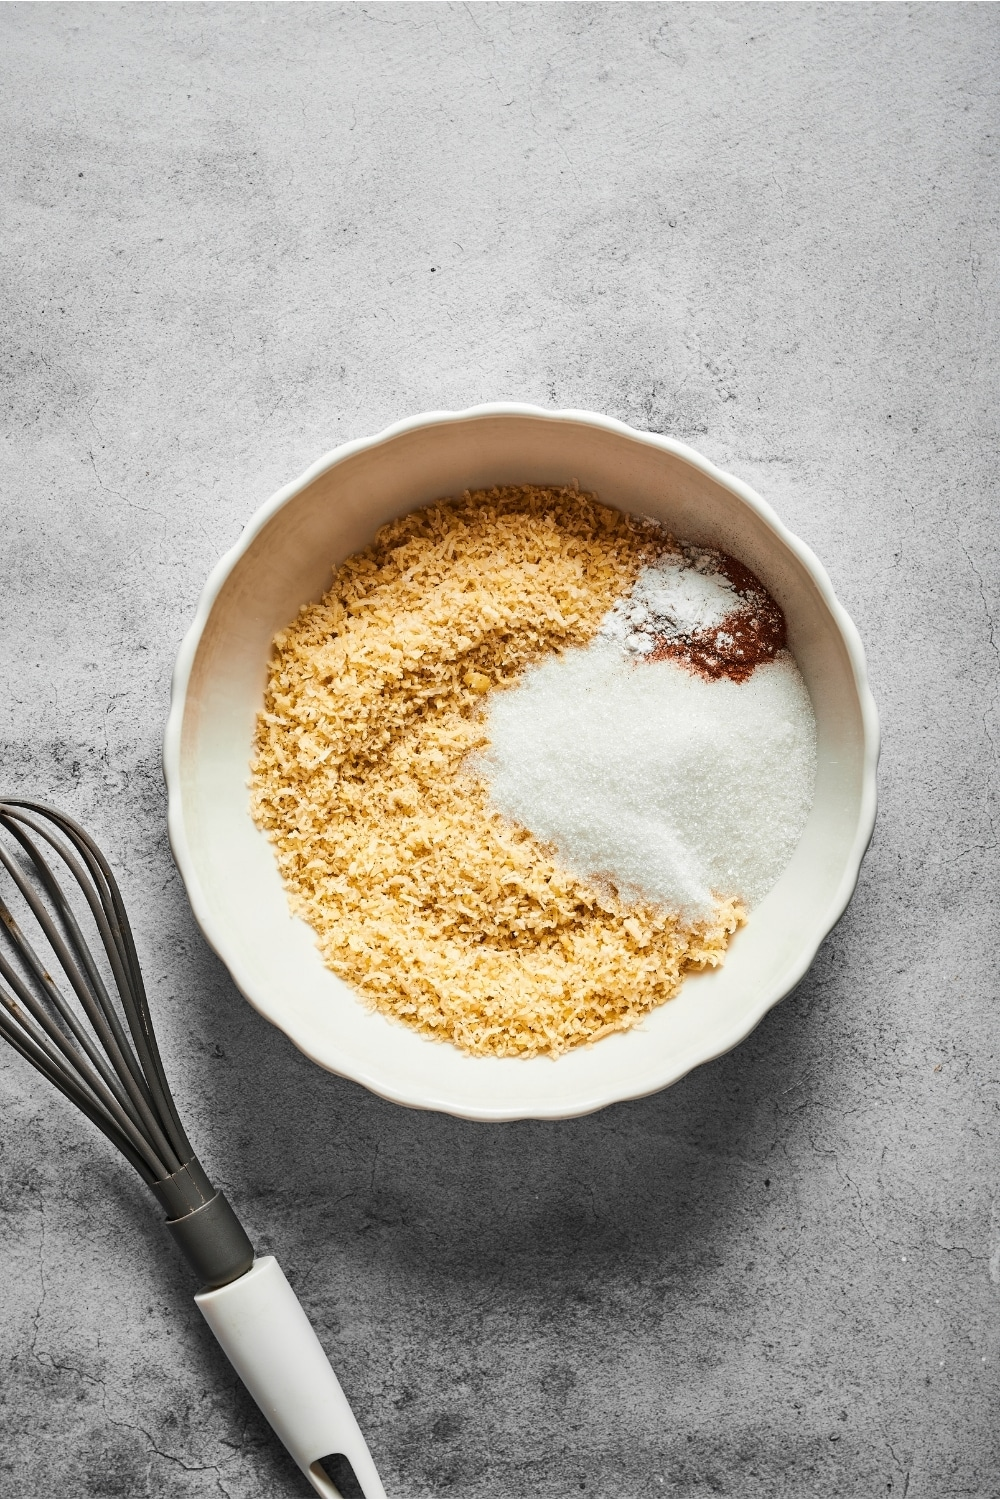 A small white bowl with almond flour, baking powder, cinnamon, and erythritol on a gray counter. There is a whisk to the left of the bowl.